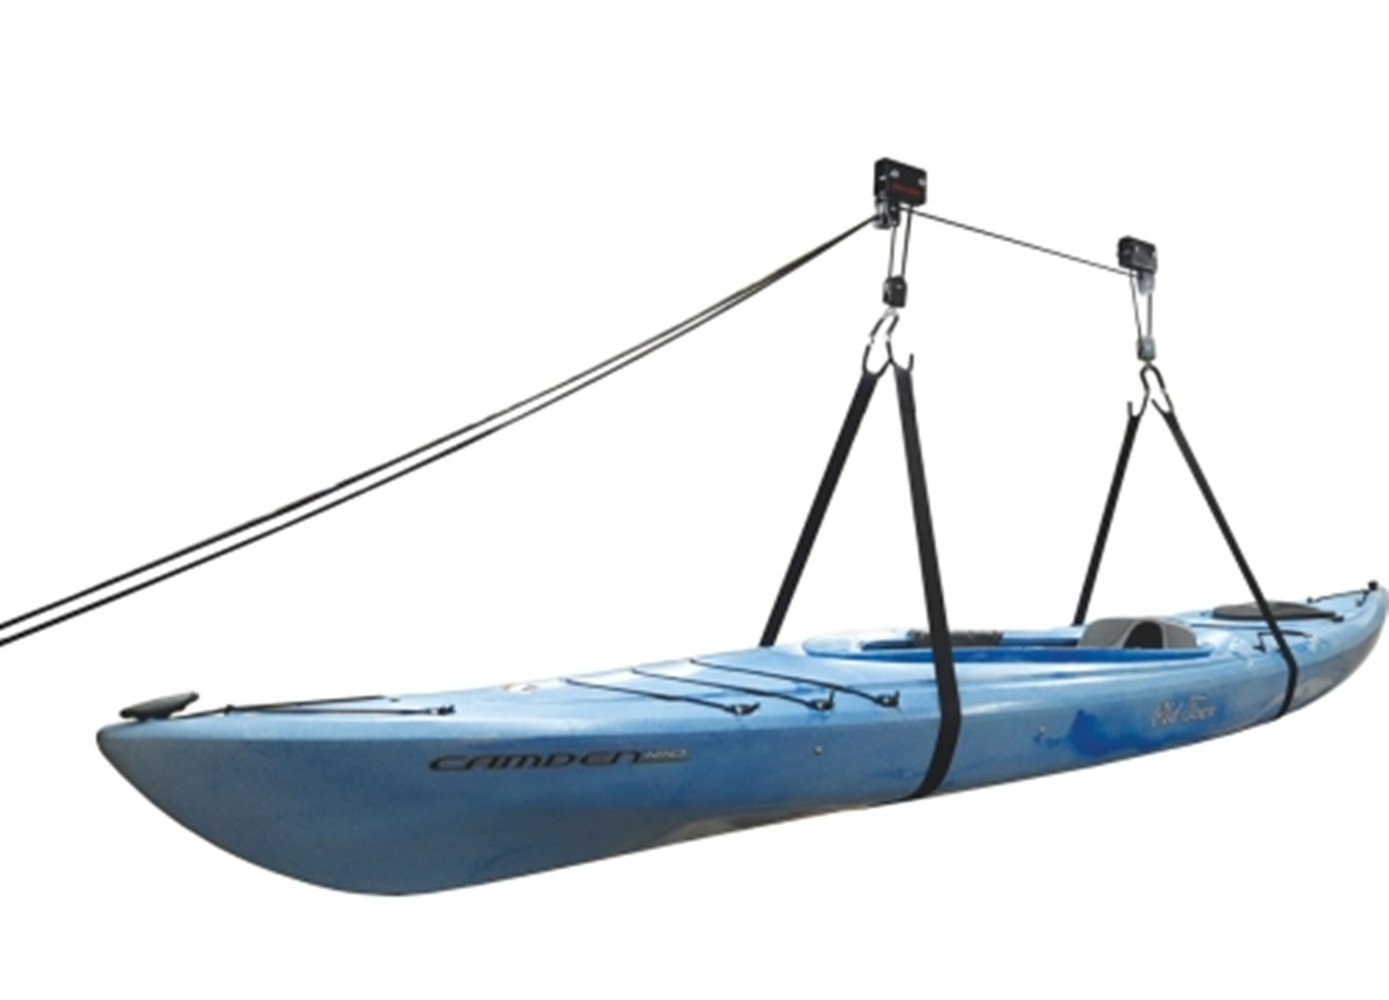 Malone Kayak Storage Pulley System Hammock Deluxe Hoist by Canoe (Image #1)